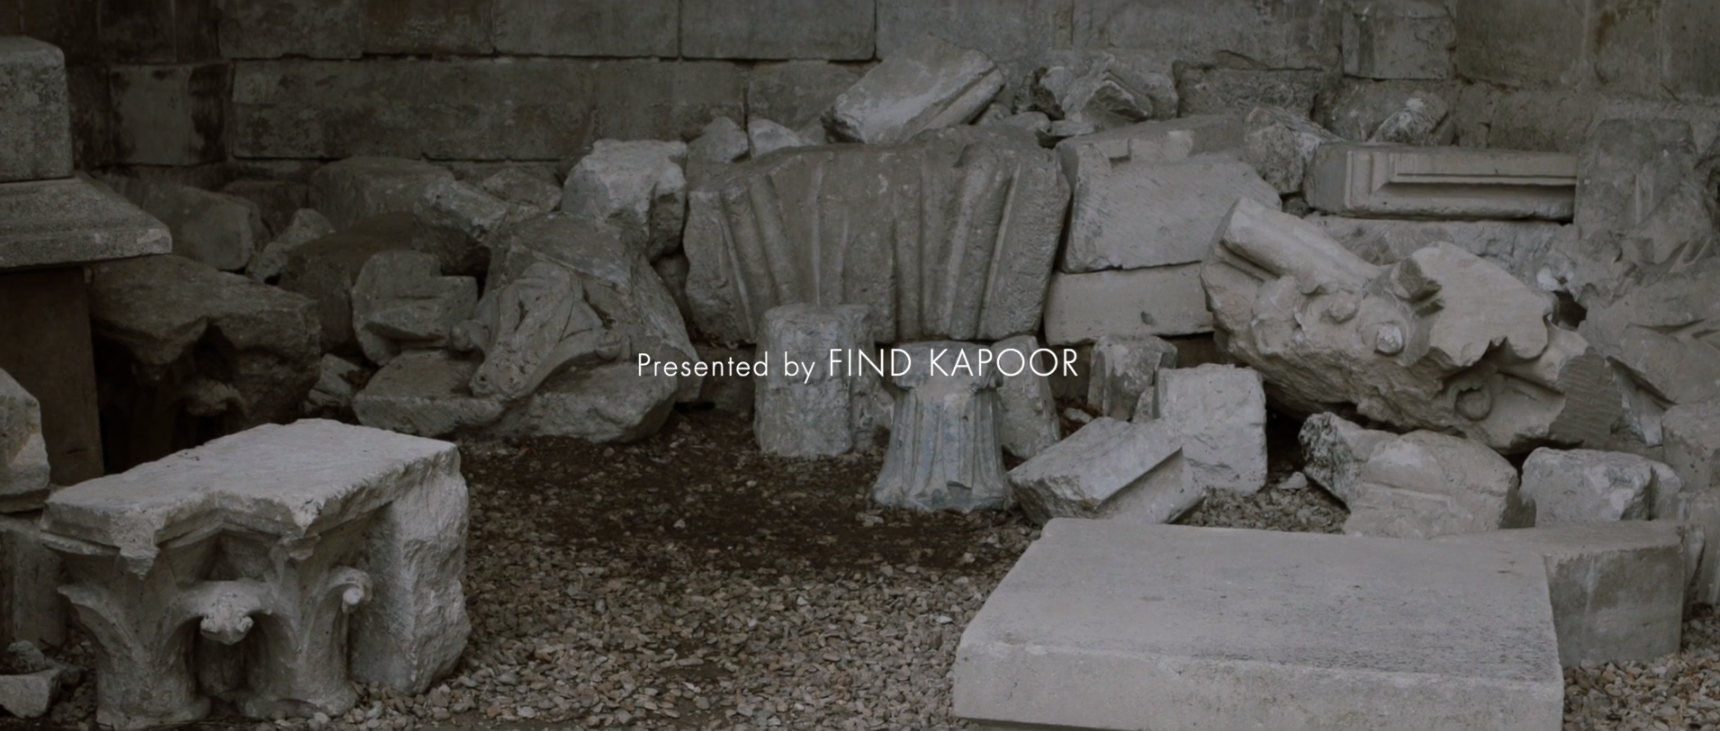 CAMPAIGN | FIND KAPOOR'S NEW COLLECTION vol 2.